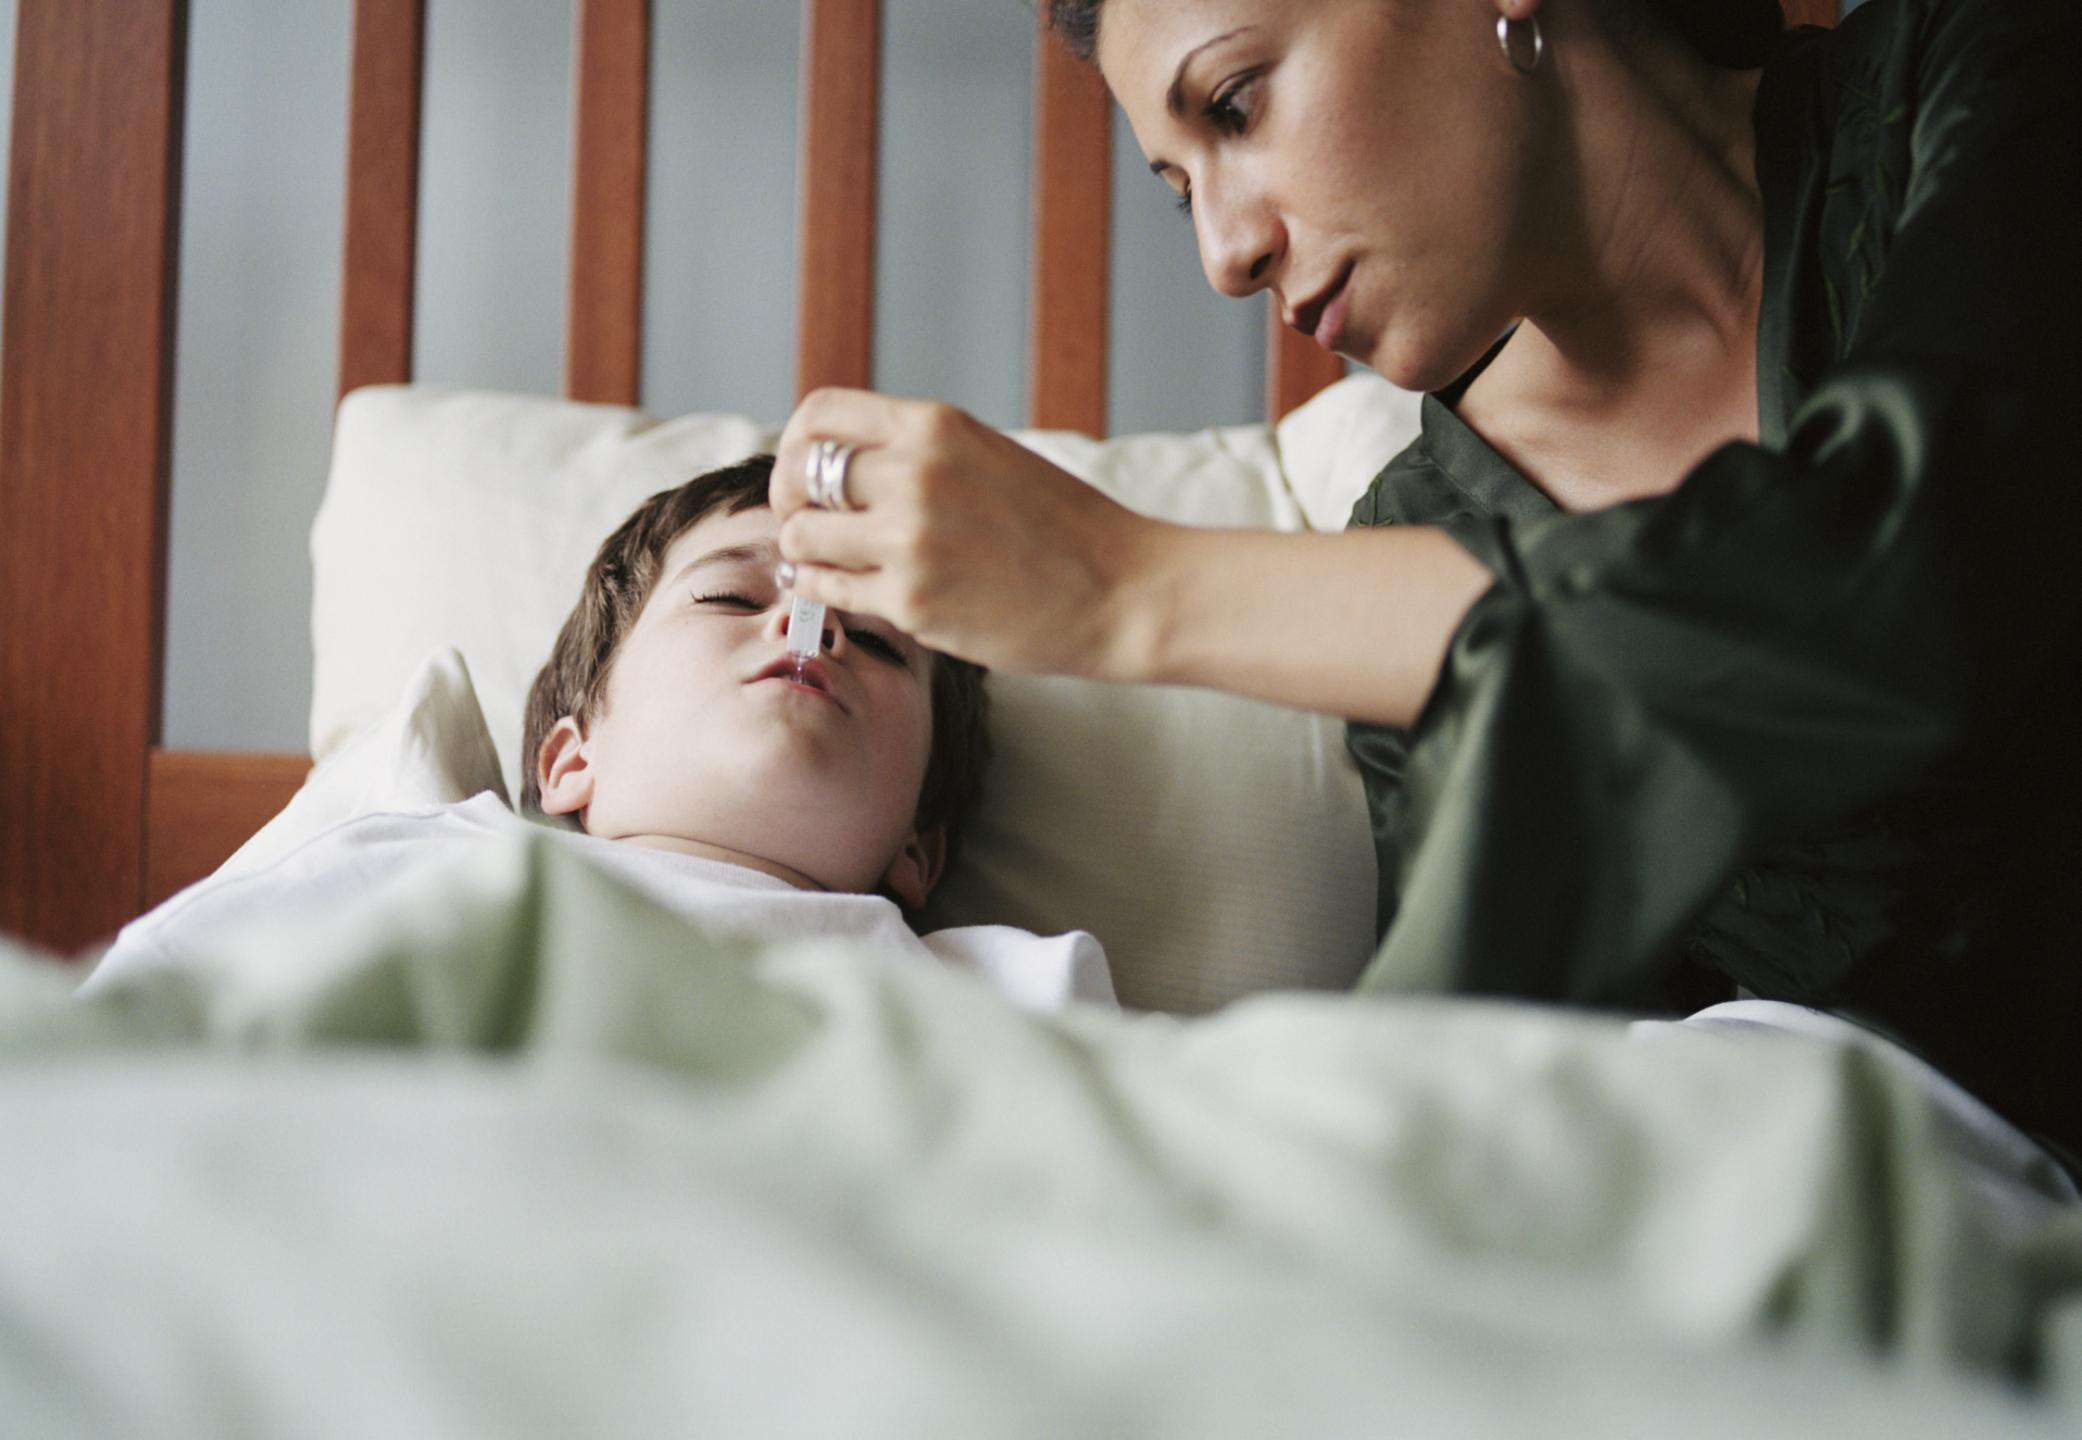 Mother checking child's temperature